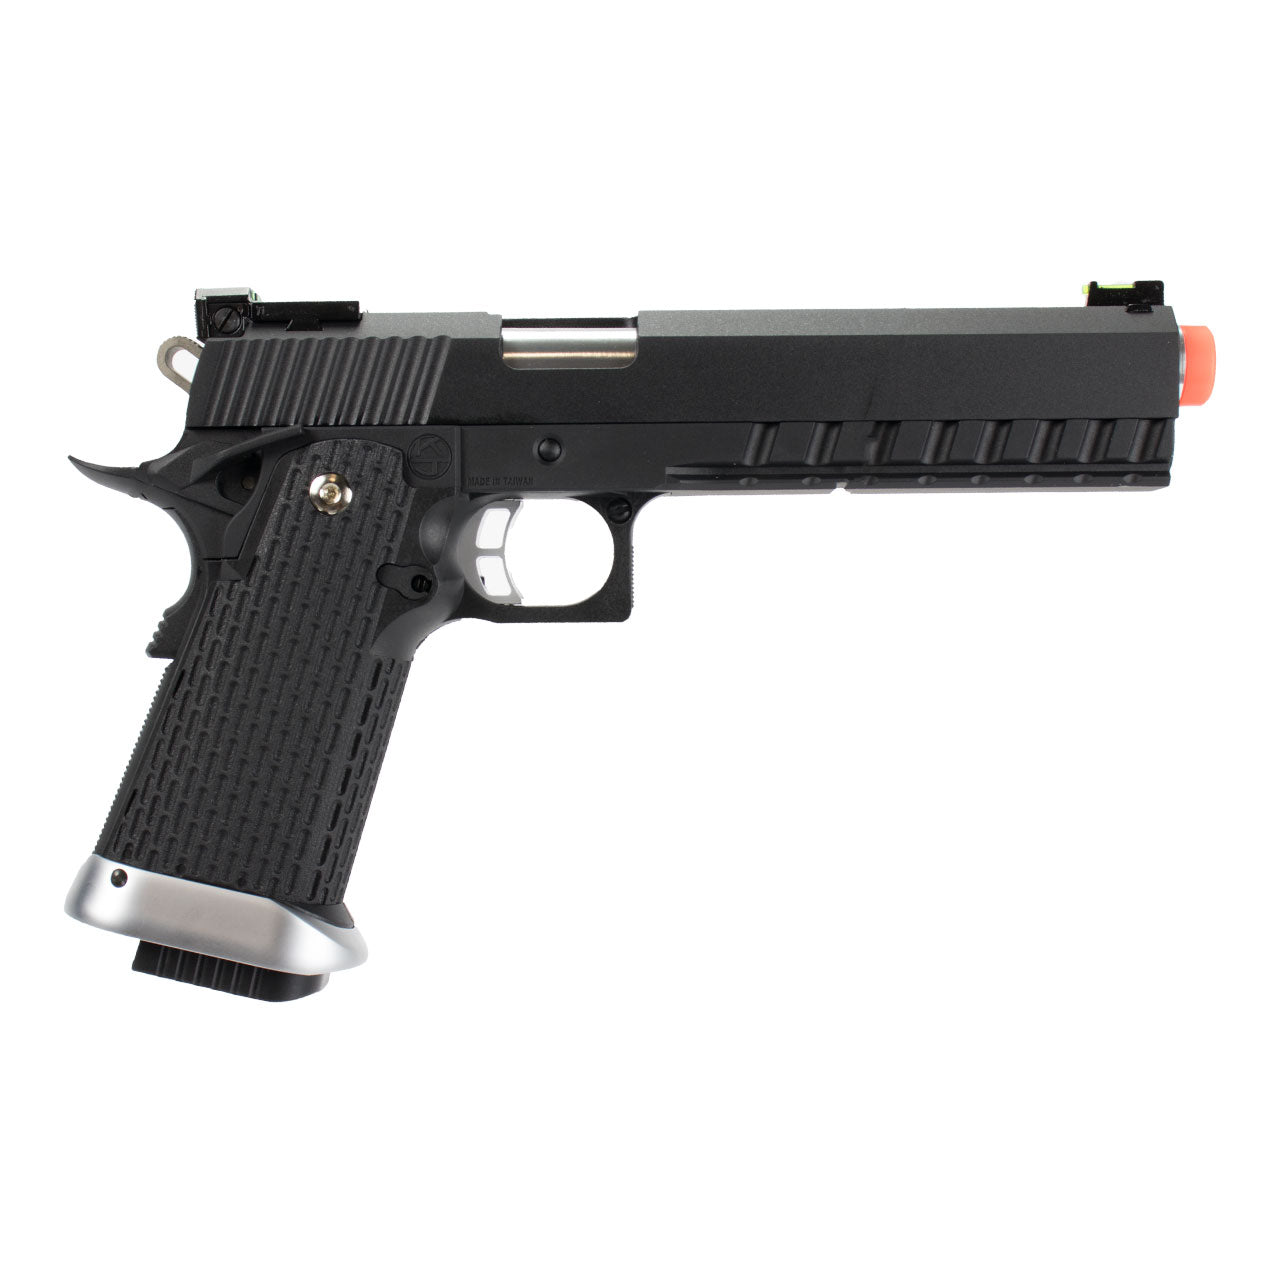 "KJW Xcelerator 6"" Hi-CAPA Full Metal Airsoft Gas Blowback Gun"